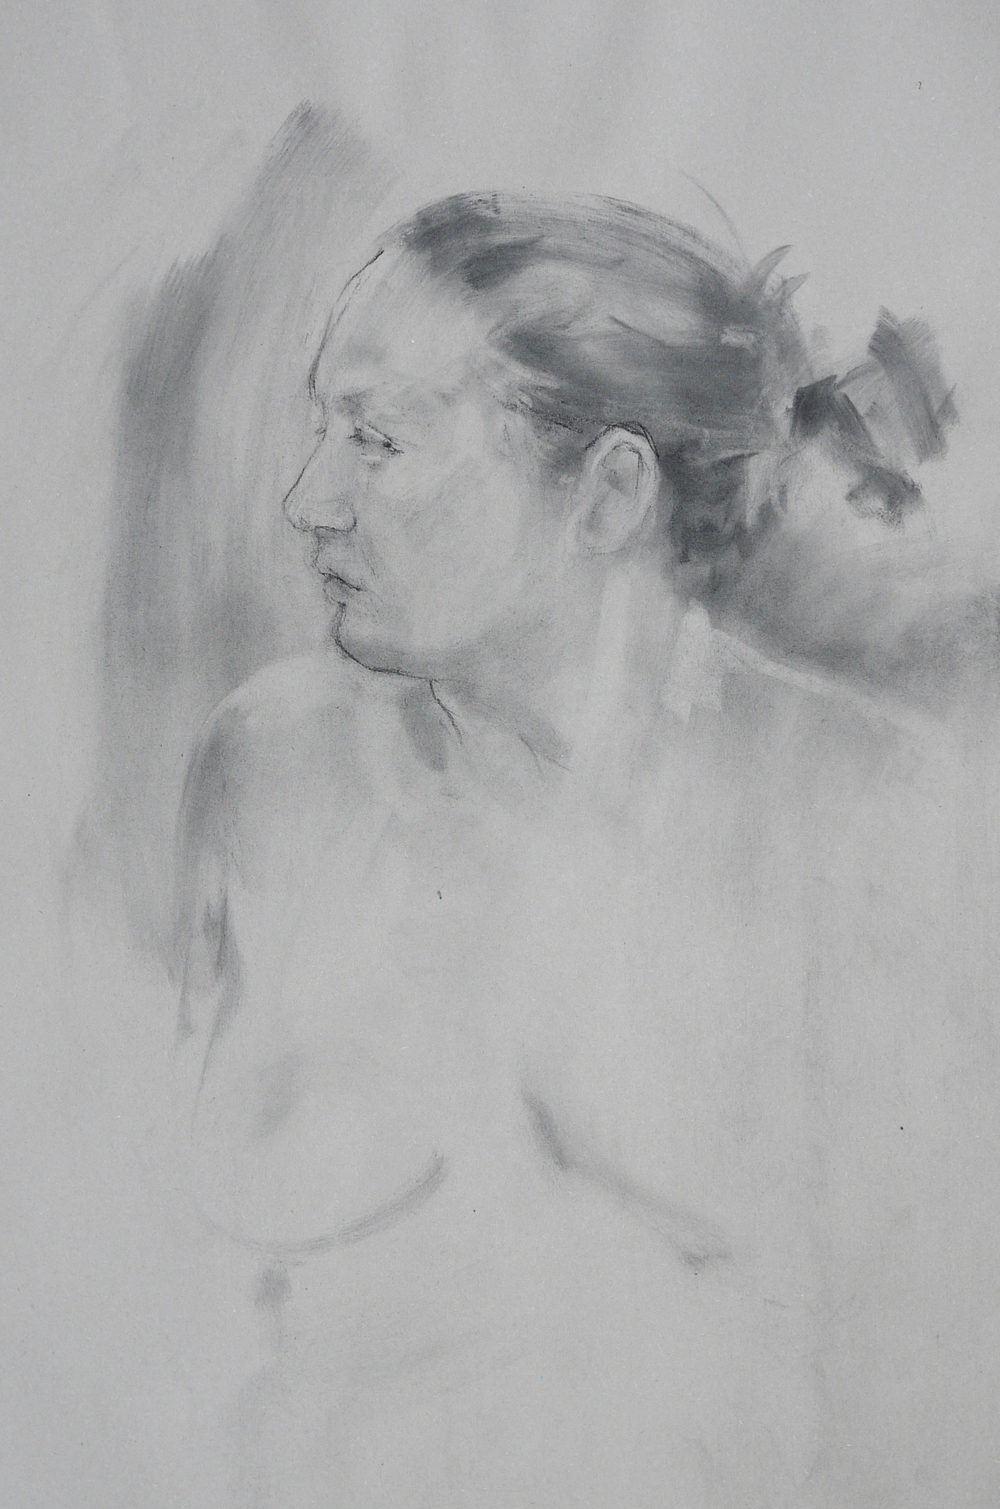 lifedrawing15.jpg